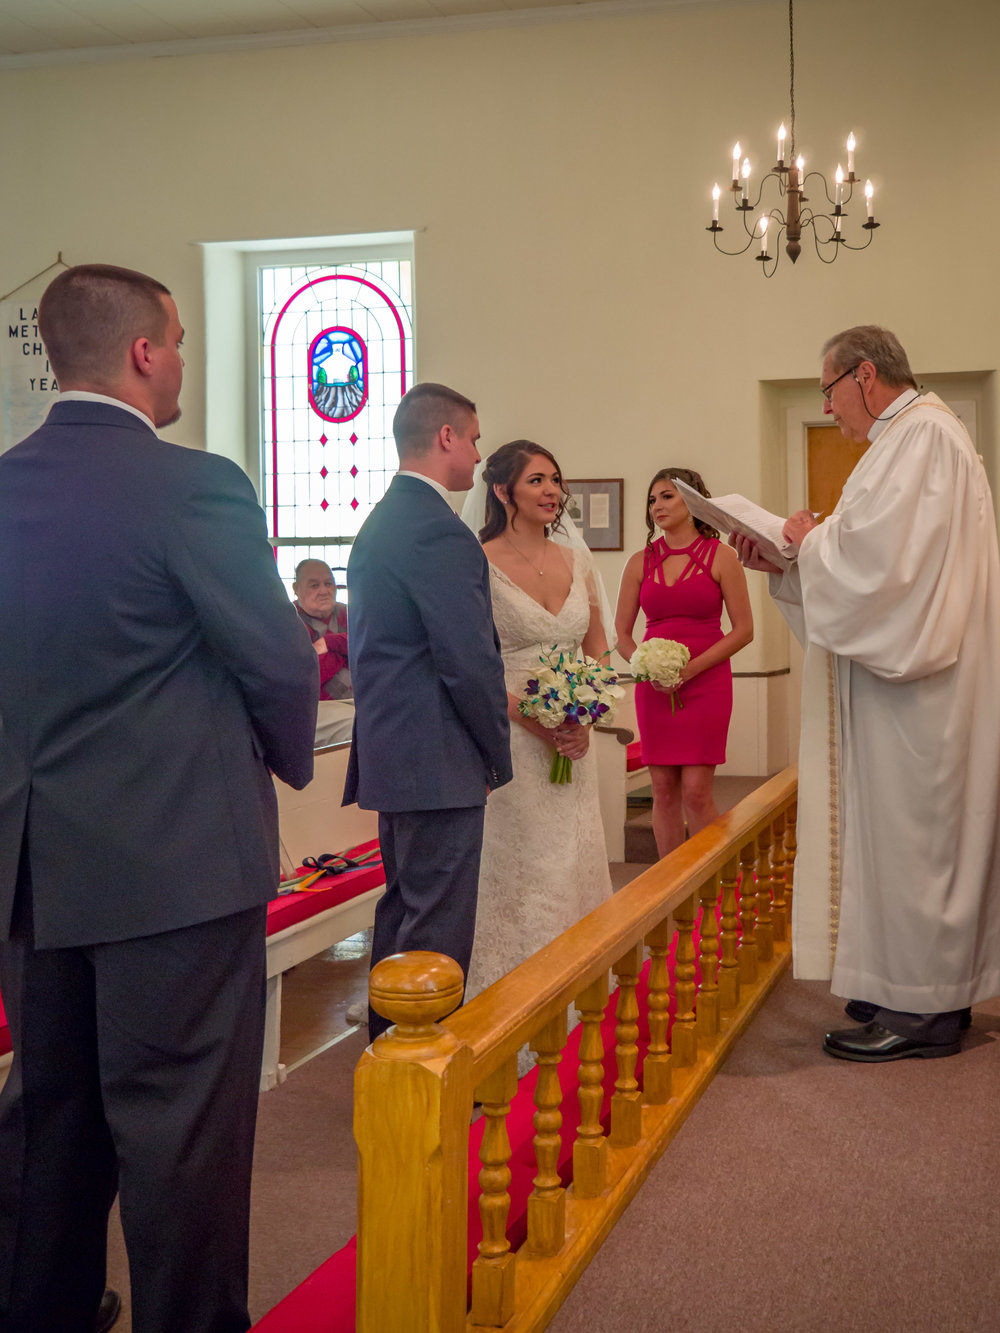 44 - Haines Ceremony - 20180616 - untitled-6167822.jpg